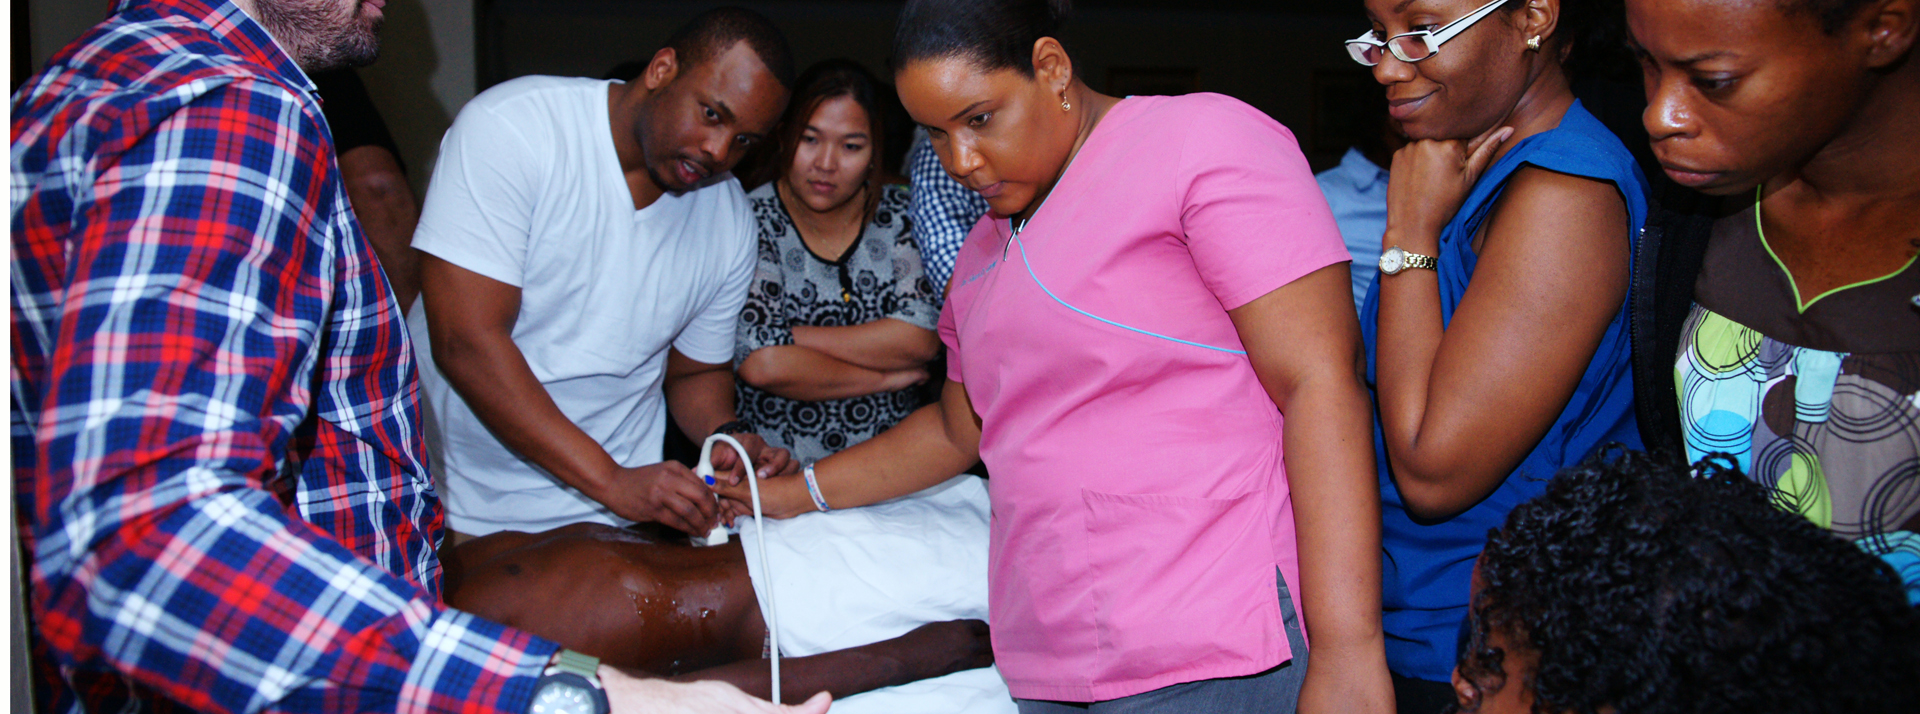 Training Doctors In Jamaica's Public Hospitals To Delivery Quality Healthcare